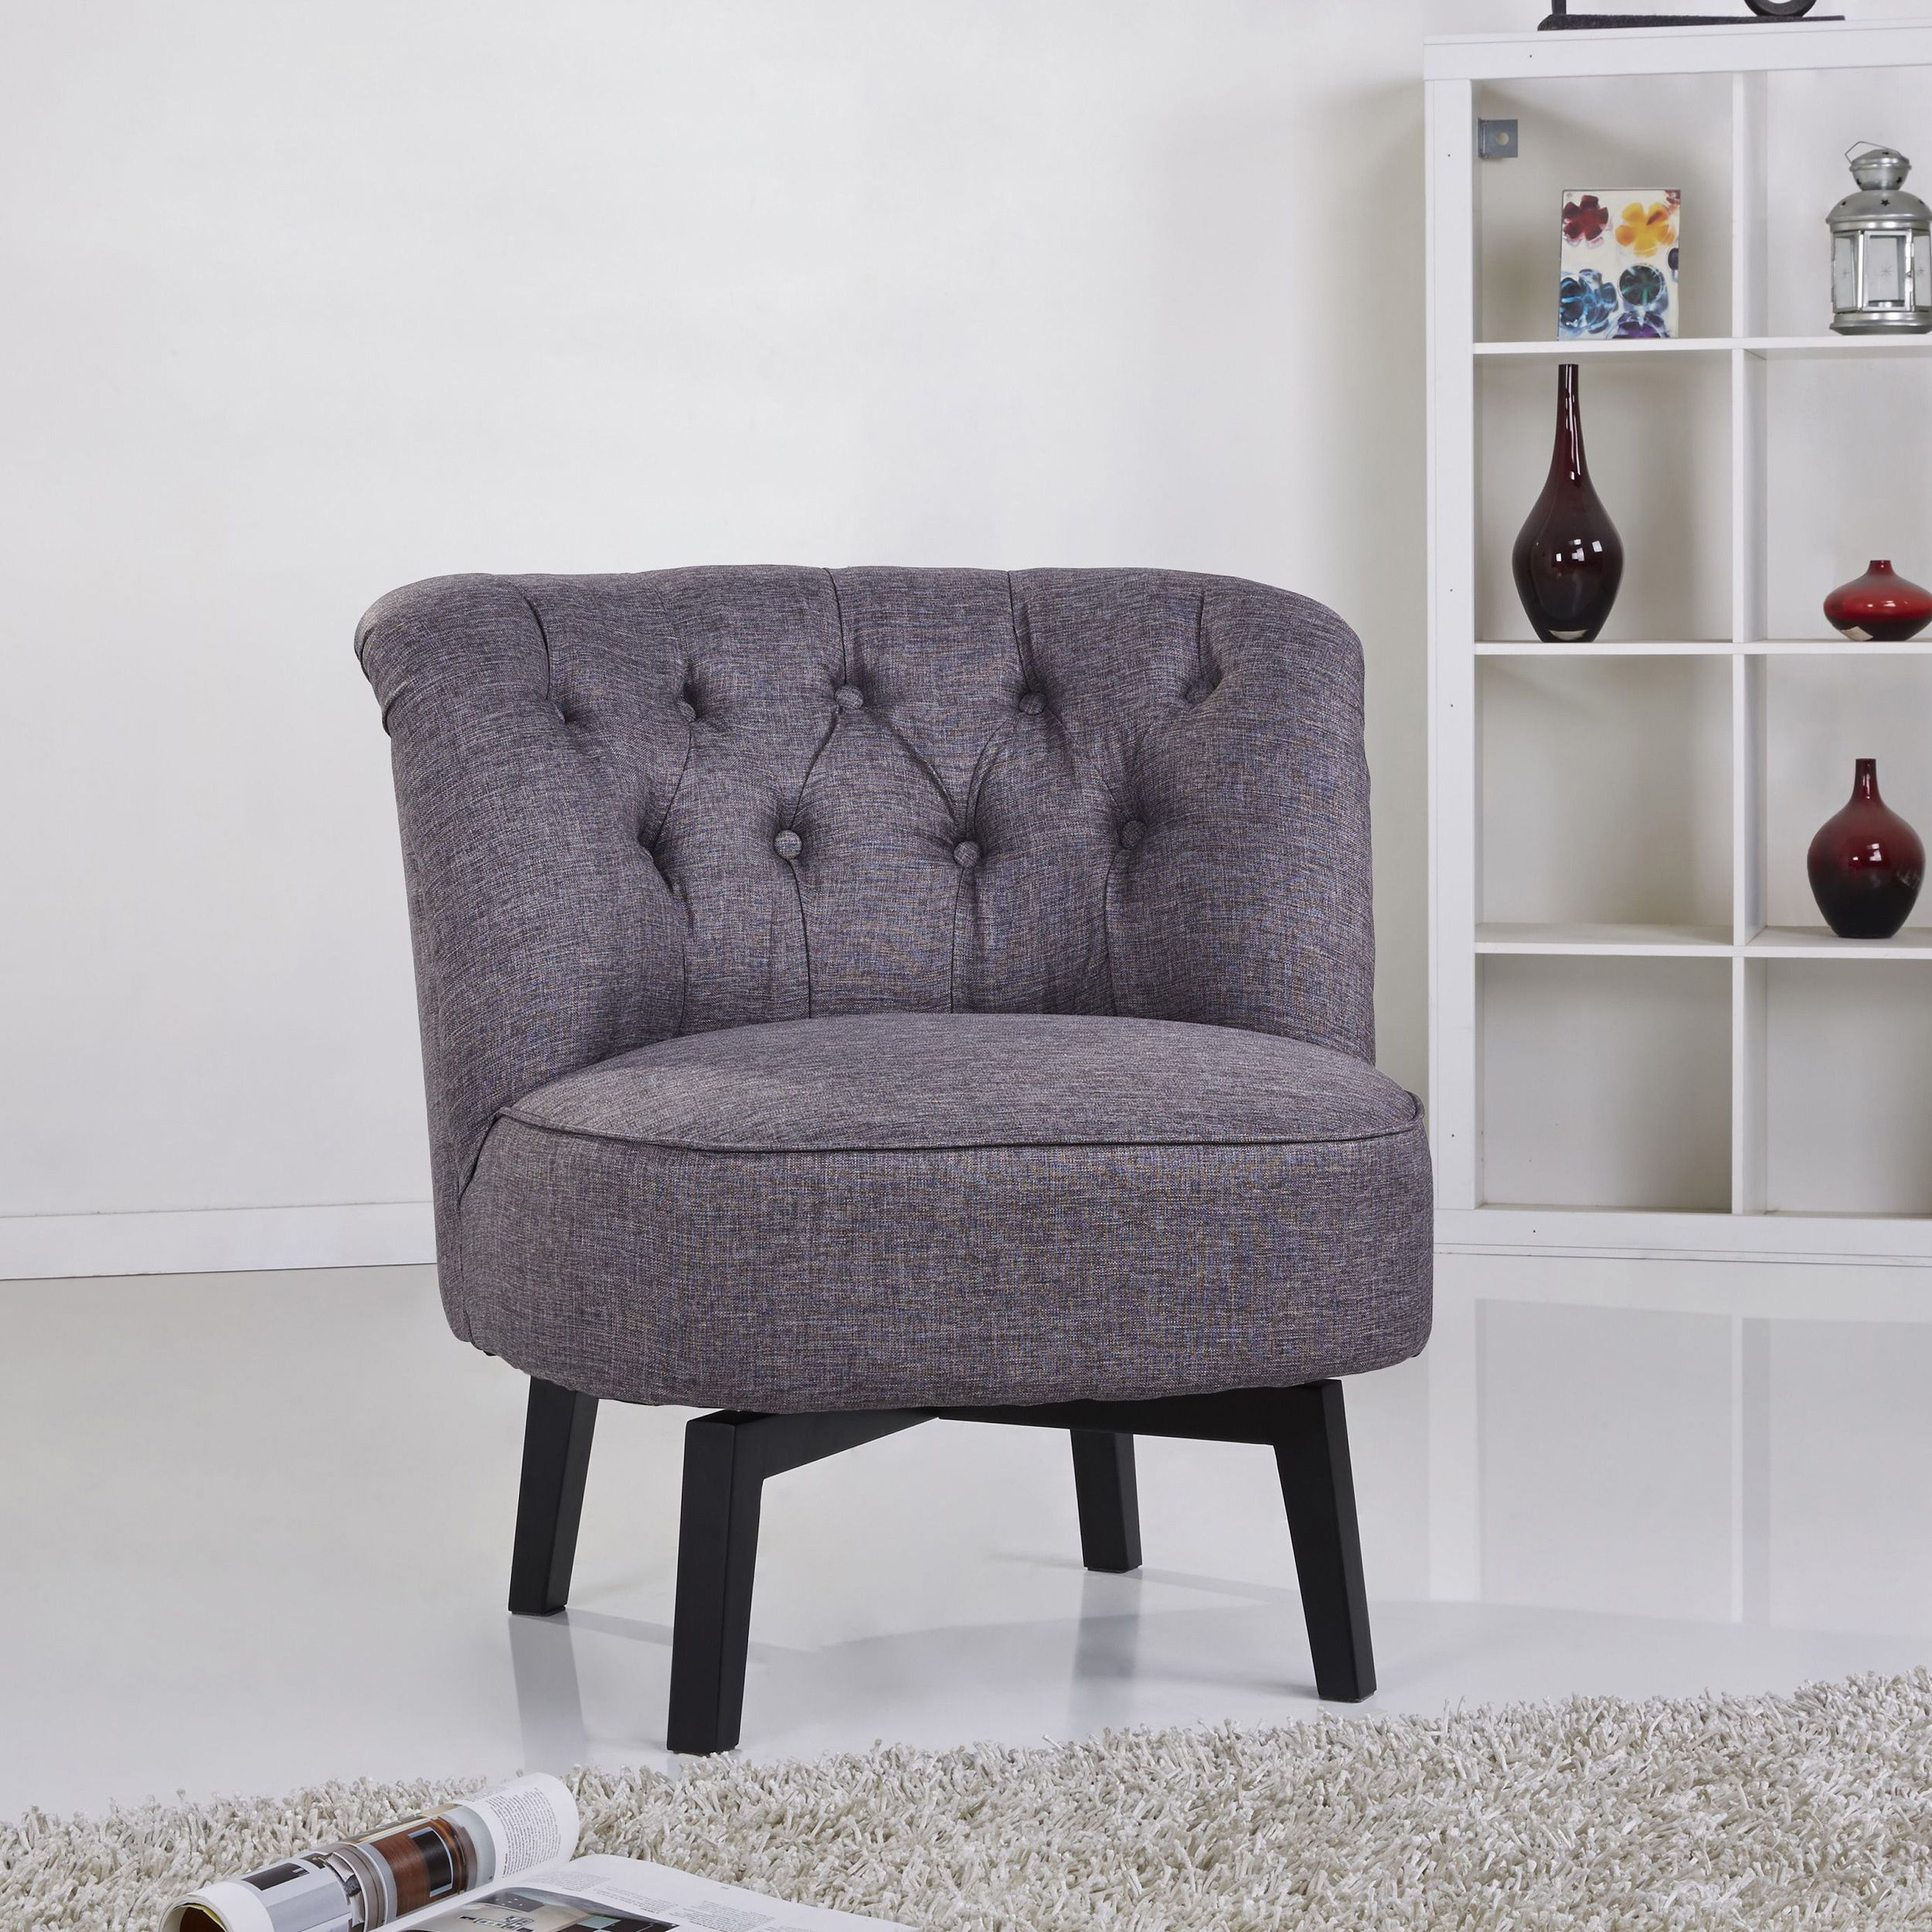 Gold Sparrow Raleigh Dark Grey Swivel Chair (Gold Sparrow Raleigh Pertaining To Dark Grey Swivel Chairs (View 17 of 25)